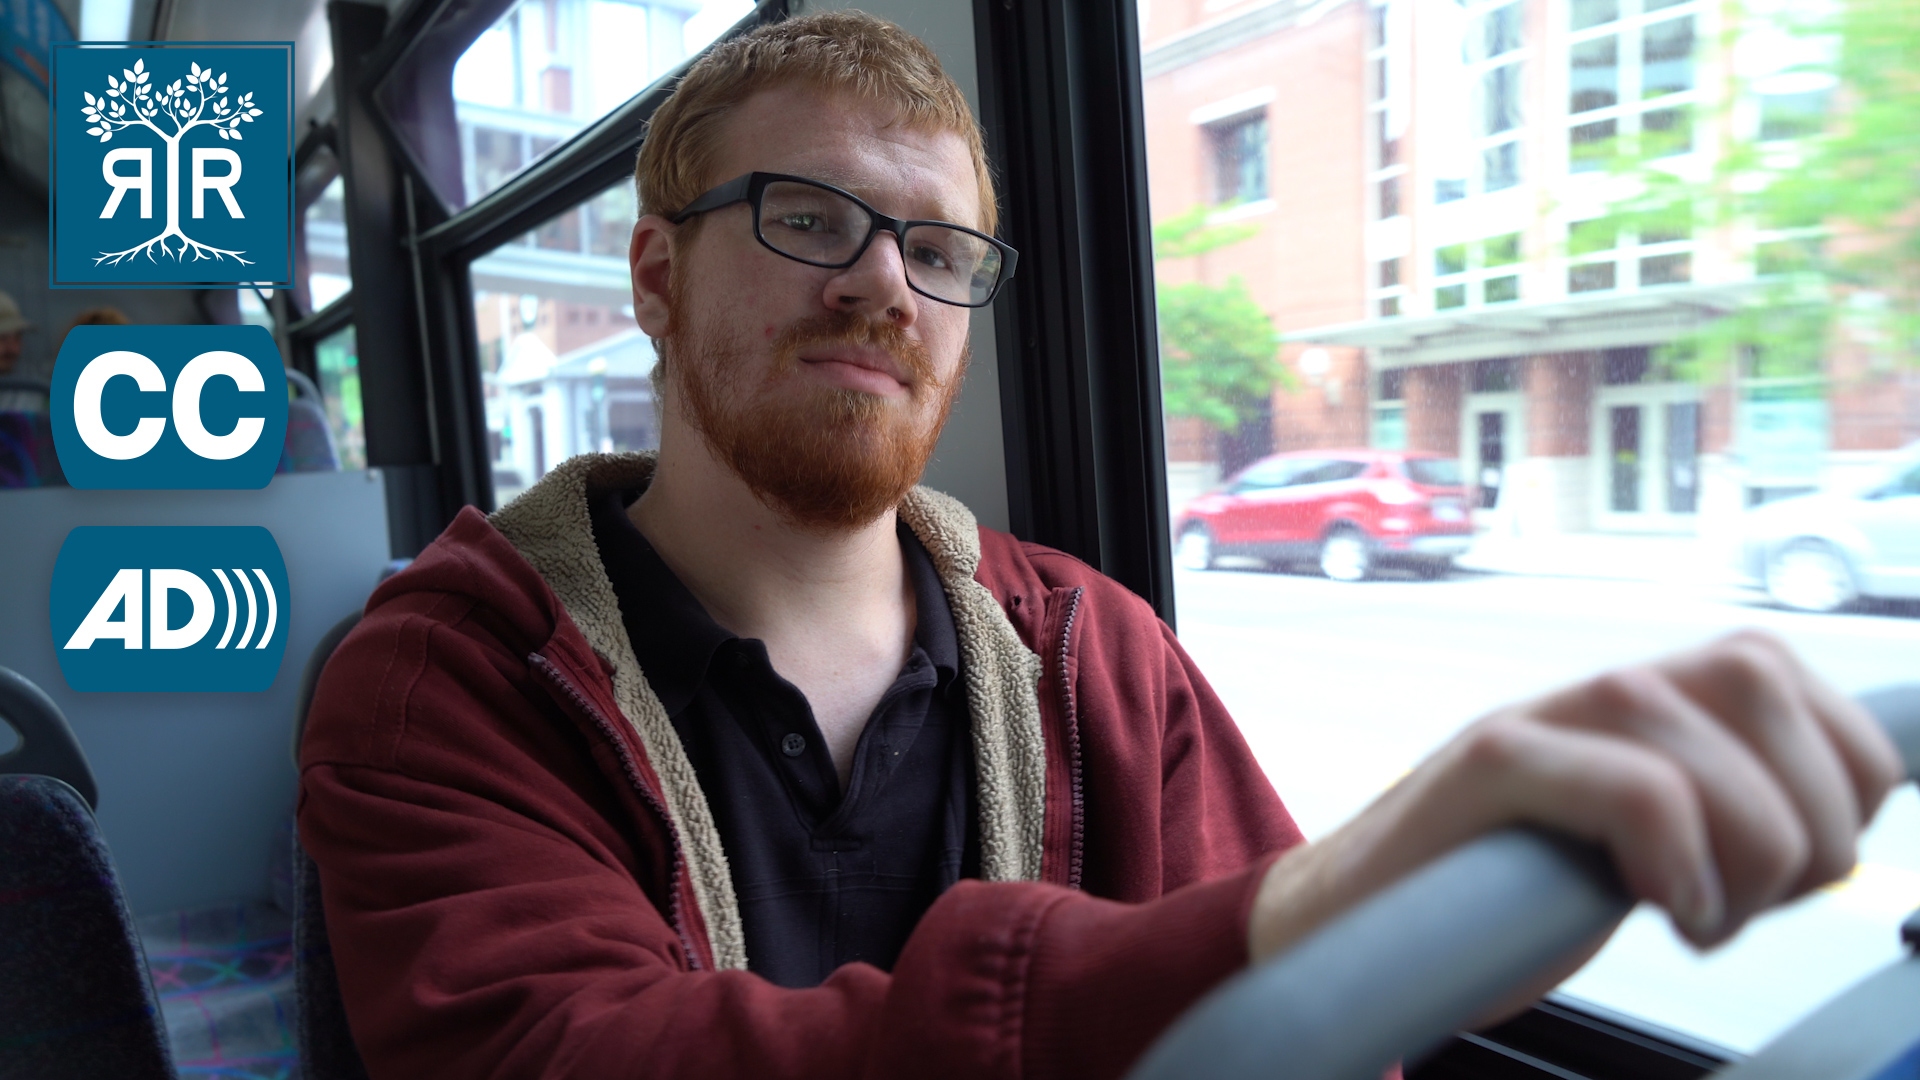 Jonah on a transit ride